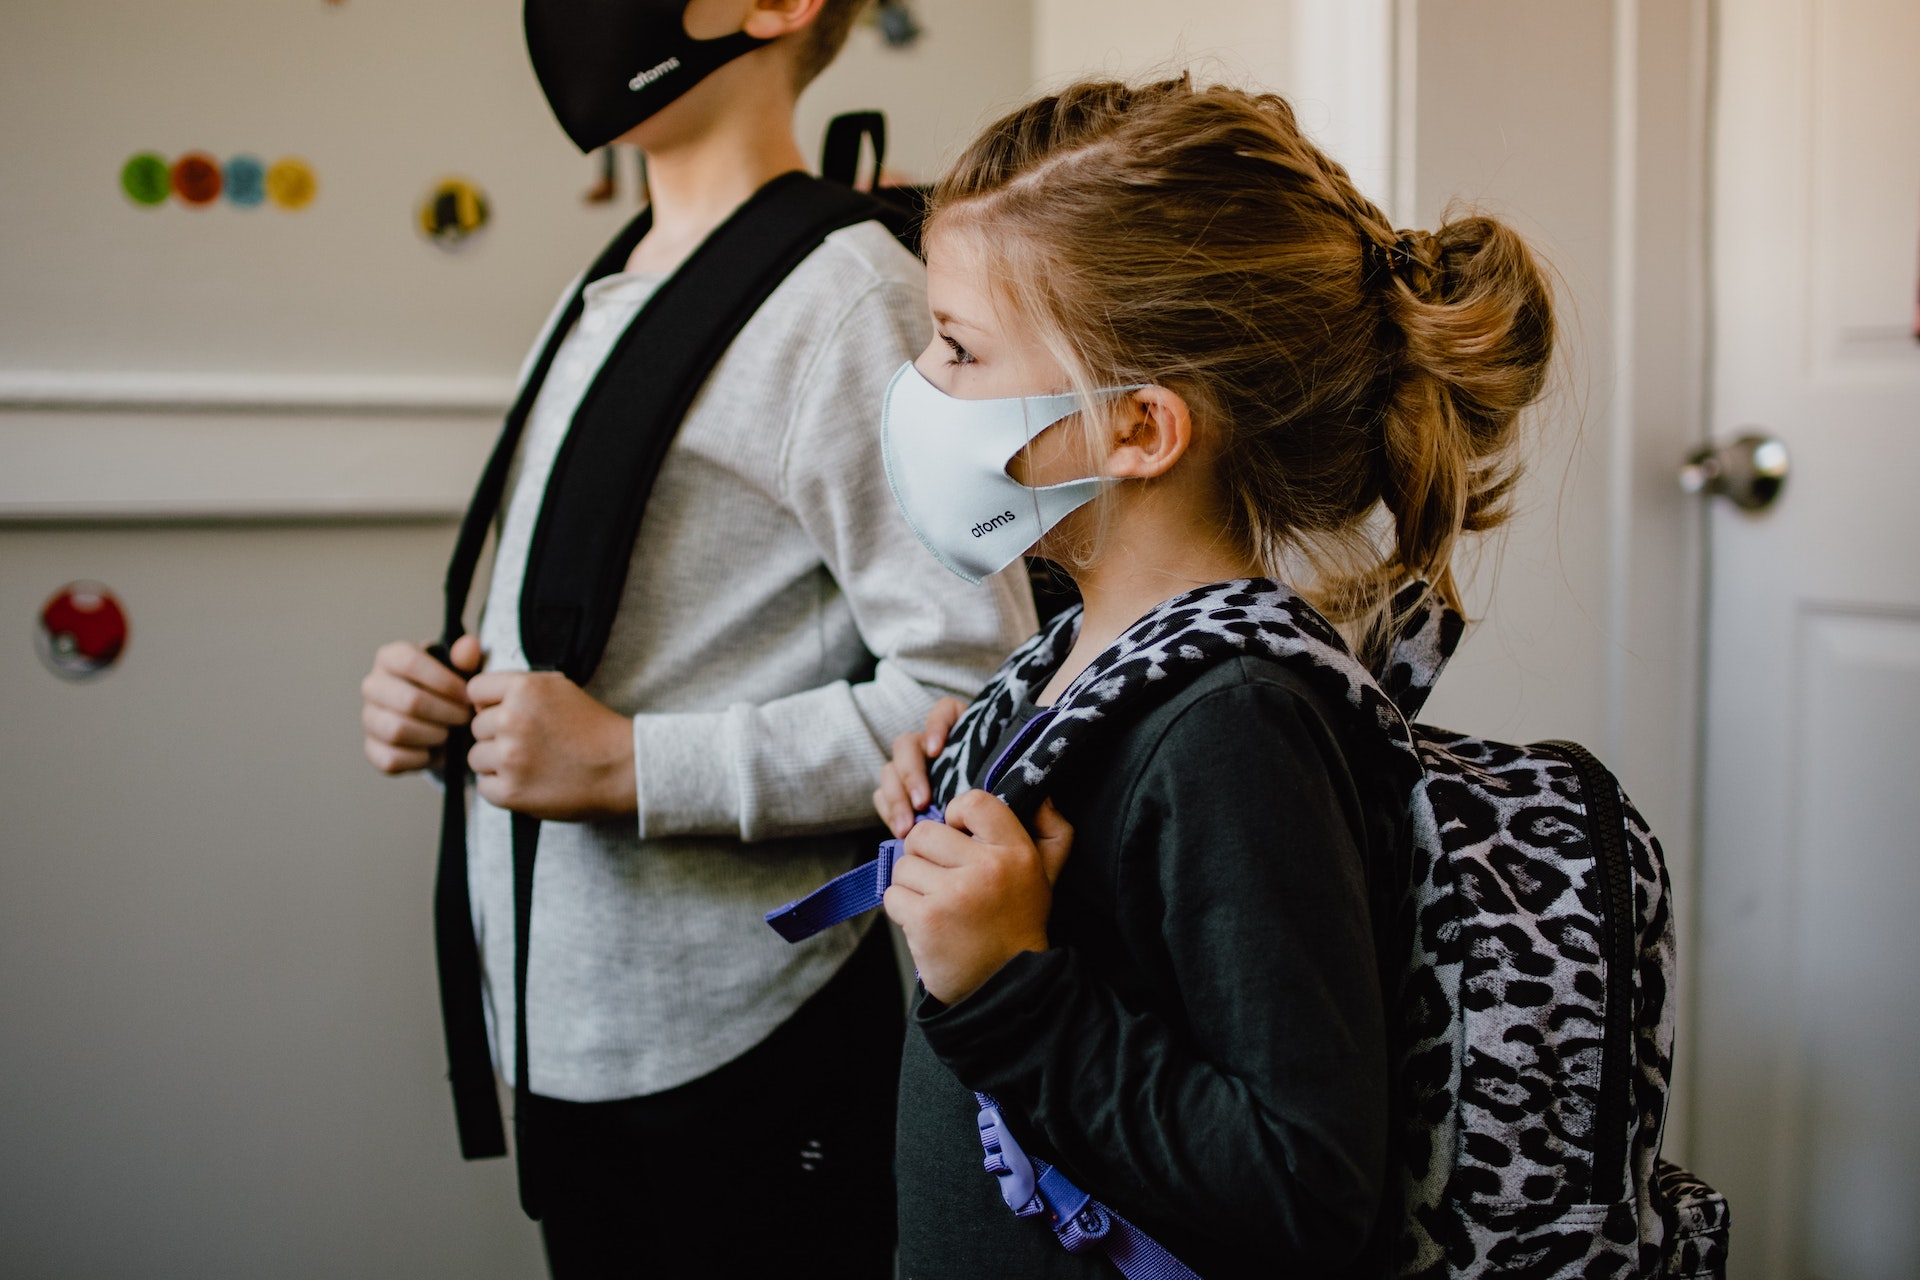 School-aged girl and boy with backpacks wearing masks on the first day of school